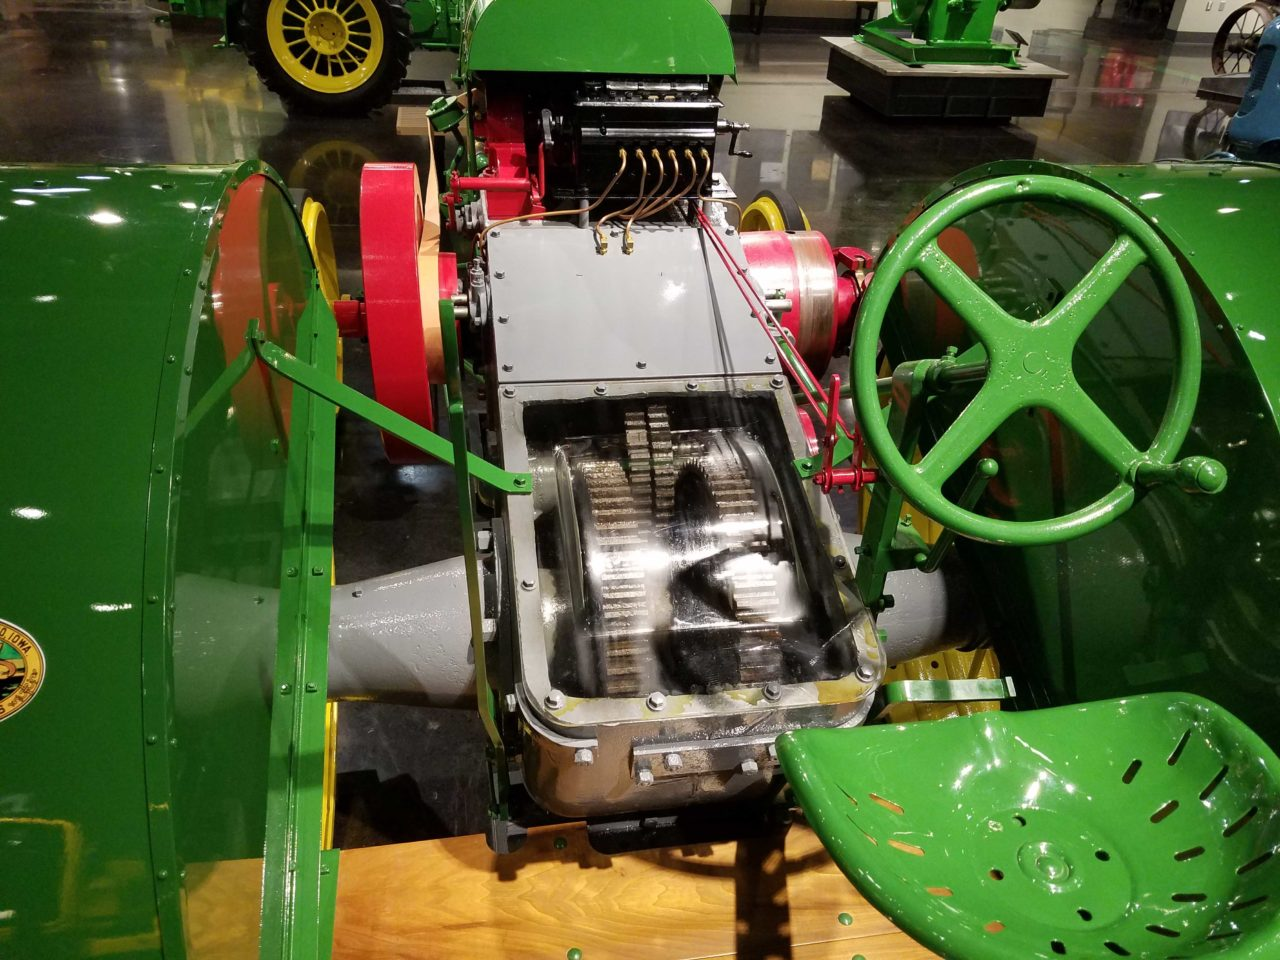 hight resolution of ultimately more than 160 000 model d tractors were built over a thirty year period but it may have all started with an experimental tractor dug out of a